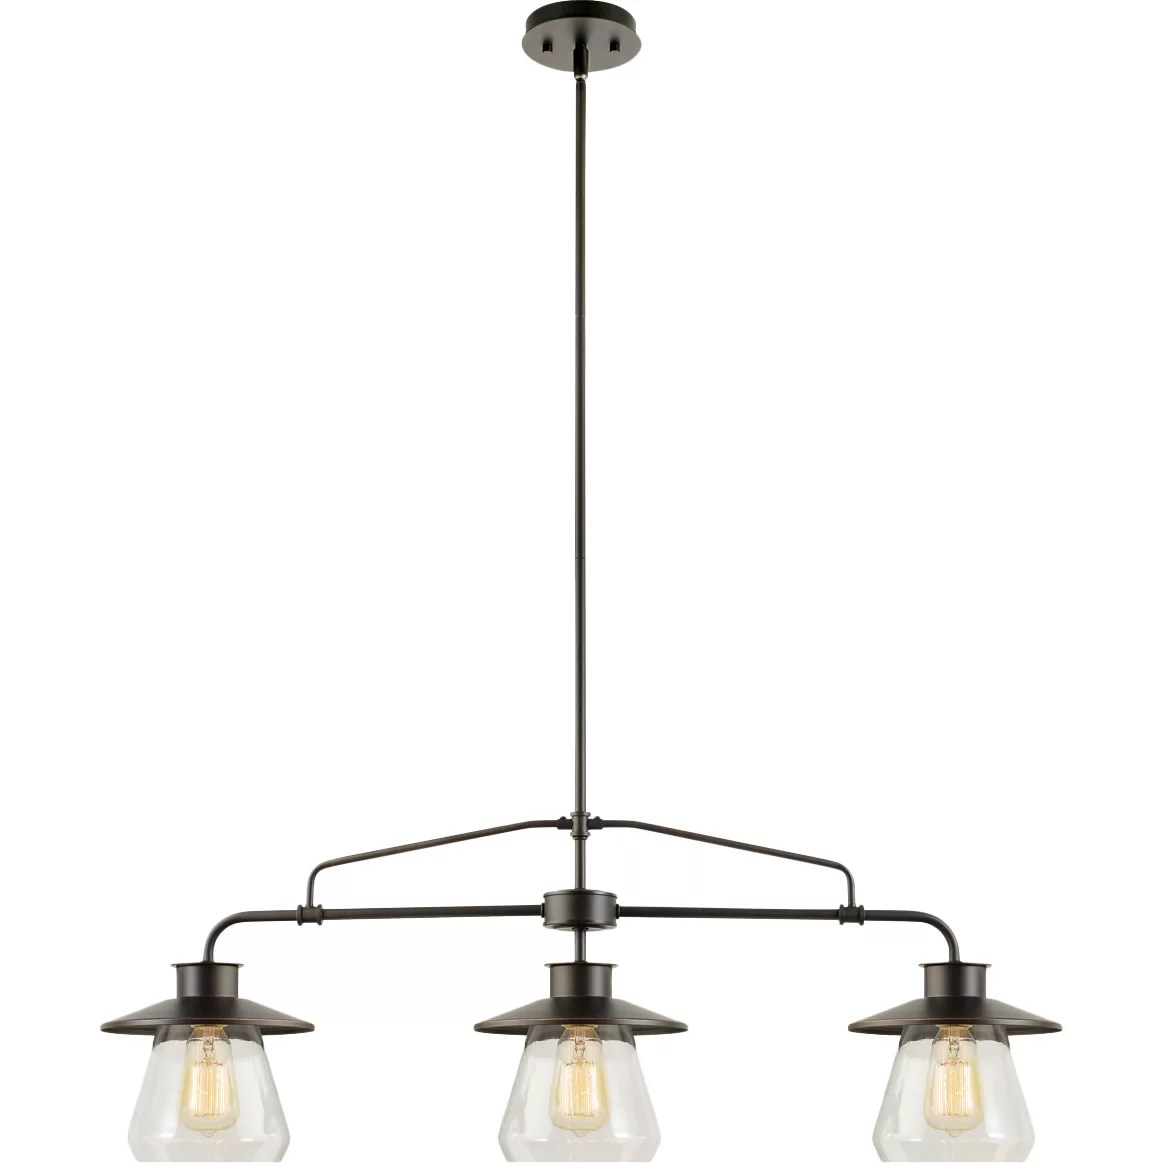 pendant lighting for kitchen islands aid mixer cover globe electric company moyet 3 light island